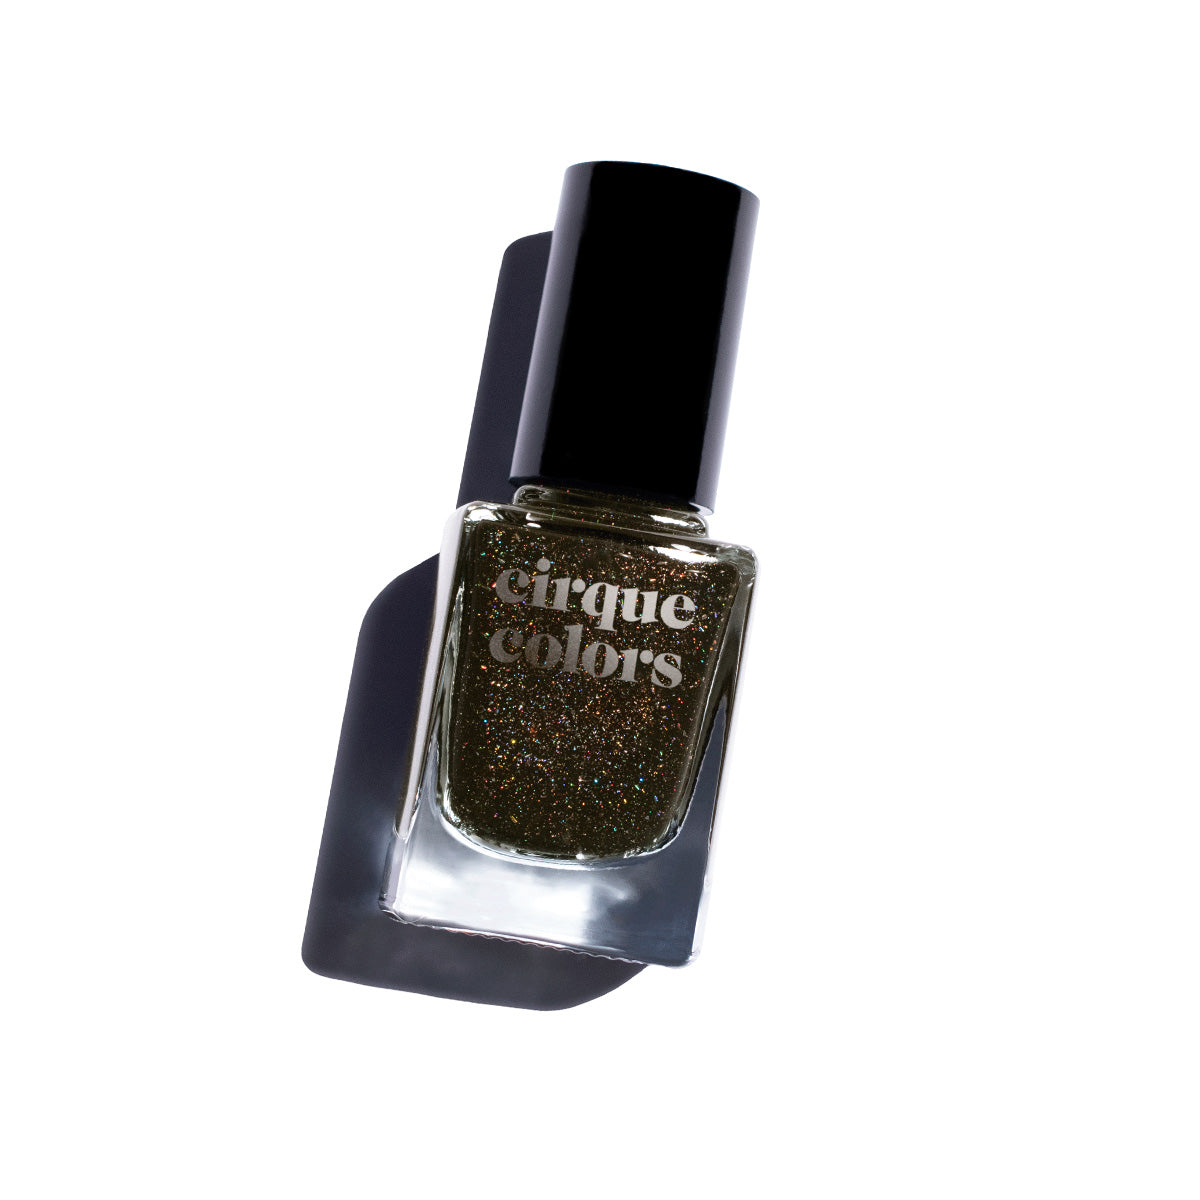 Cirque Colors - Smoky Quartz